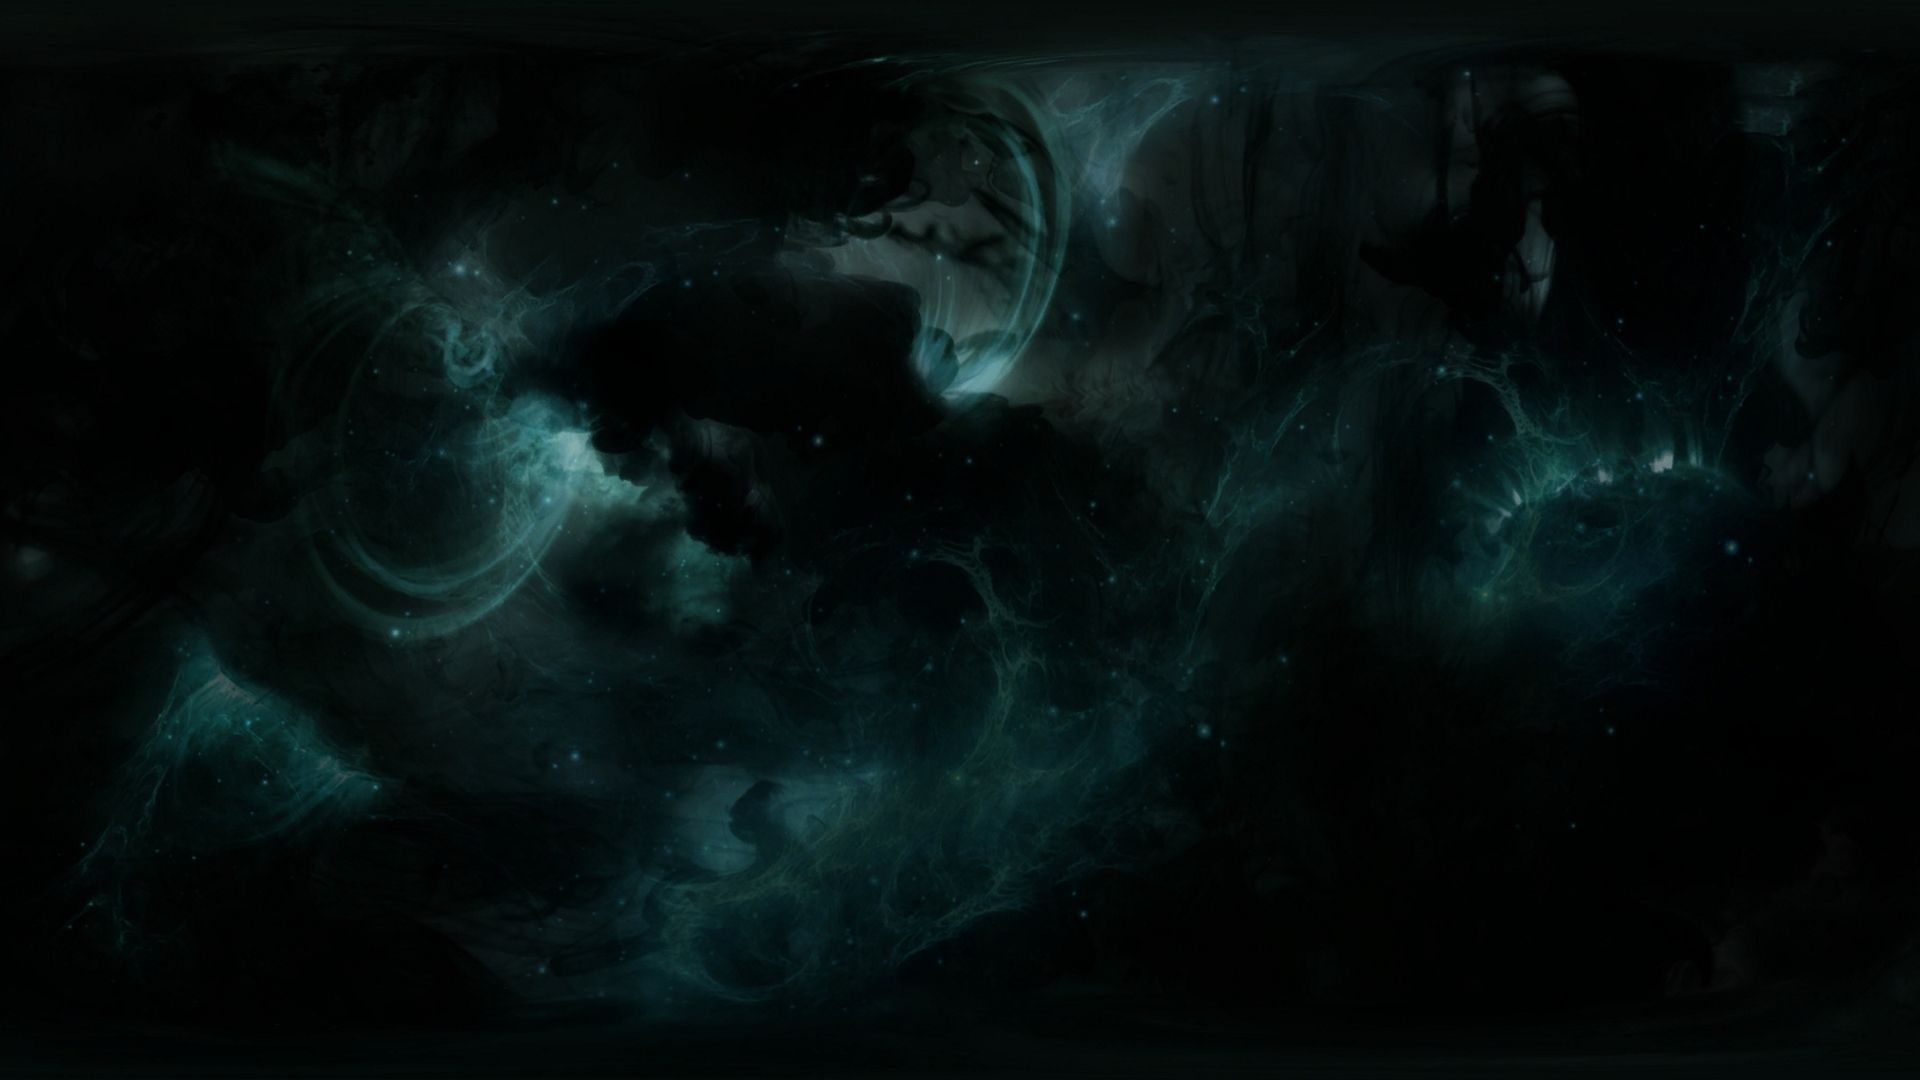 Warframe Orokin Void Background 19201080 warframe Warframe 1920x1080